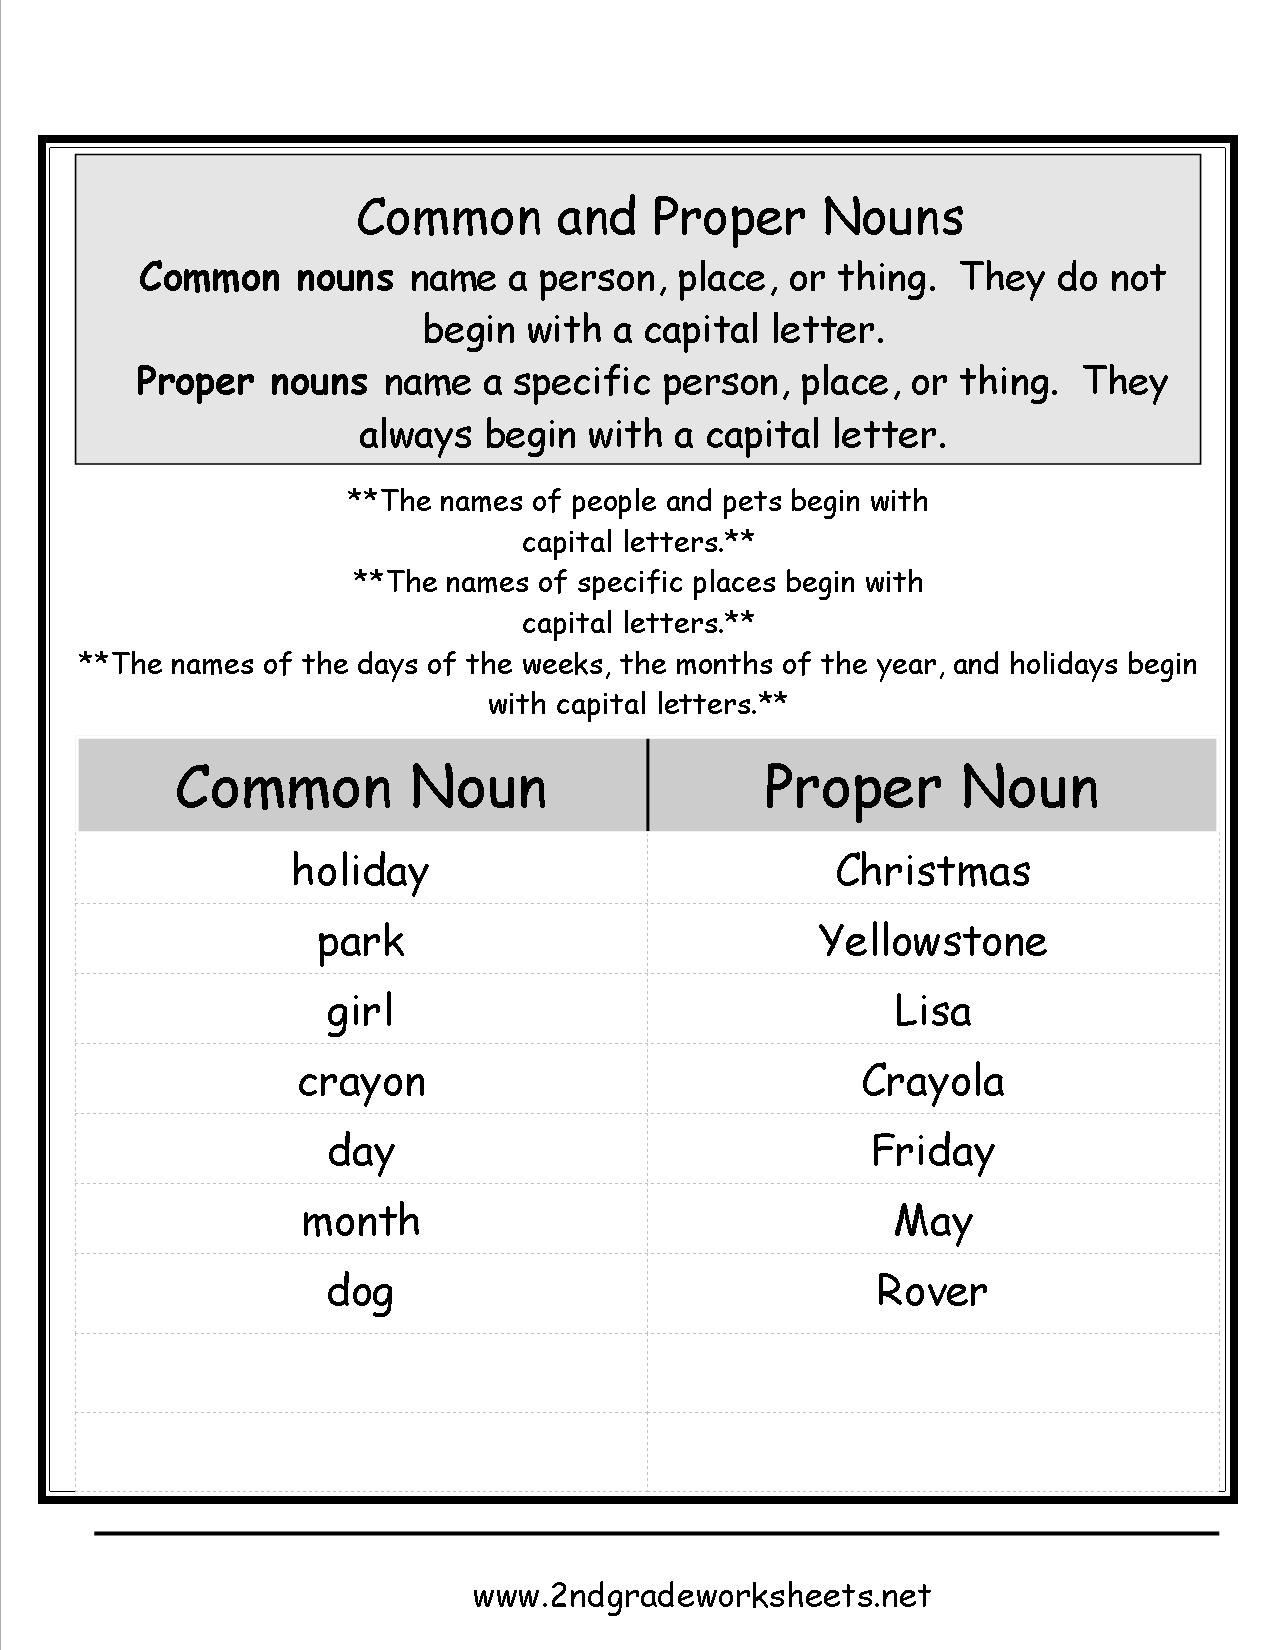 Pronouns Worksheets 5th Grade Proper Nouns Worksheet